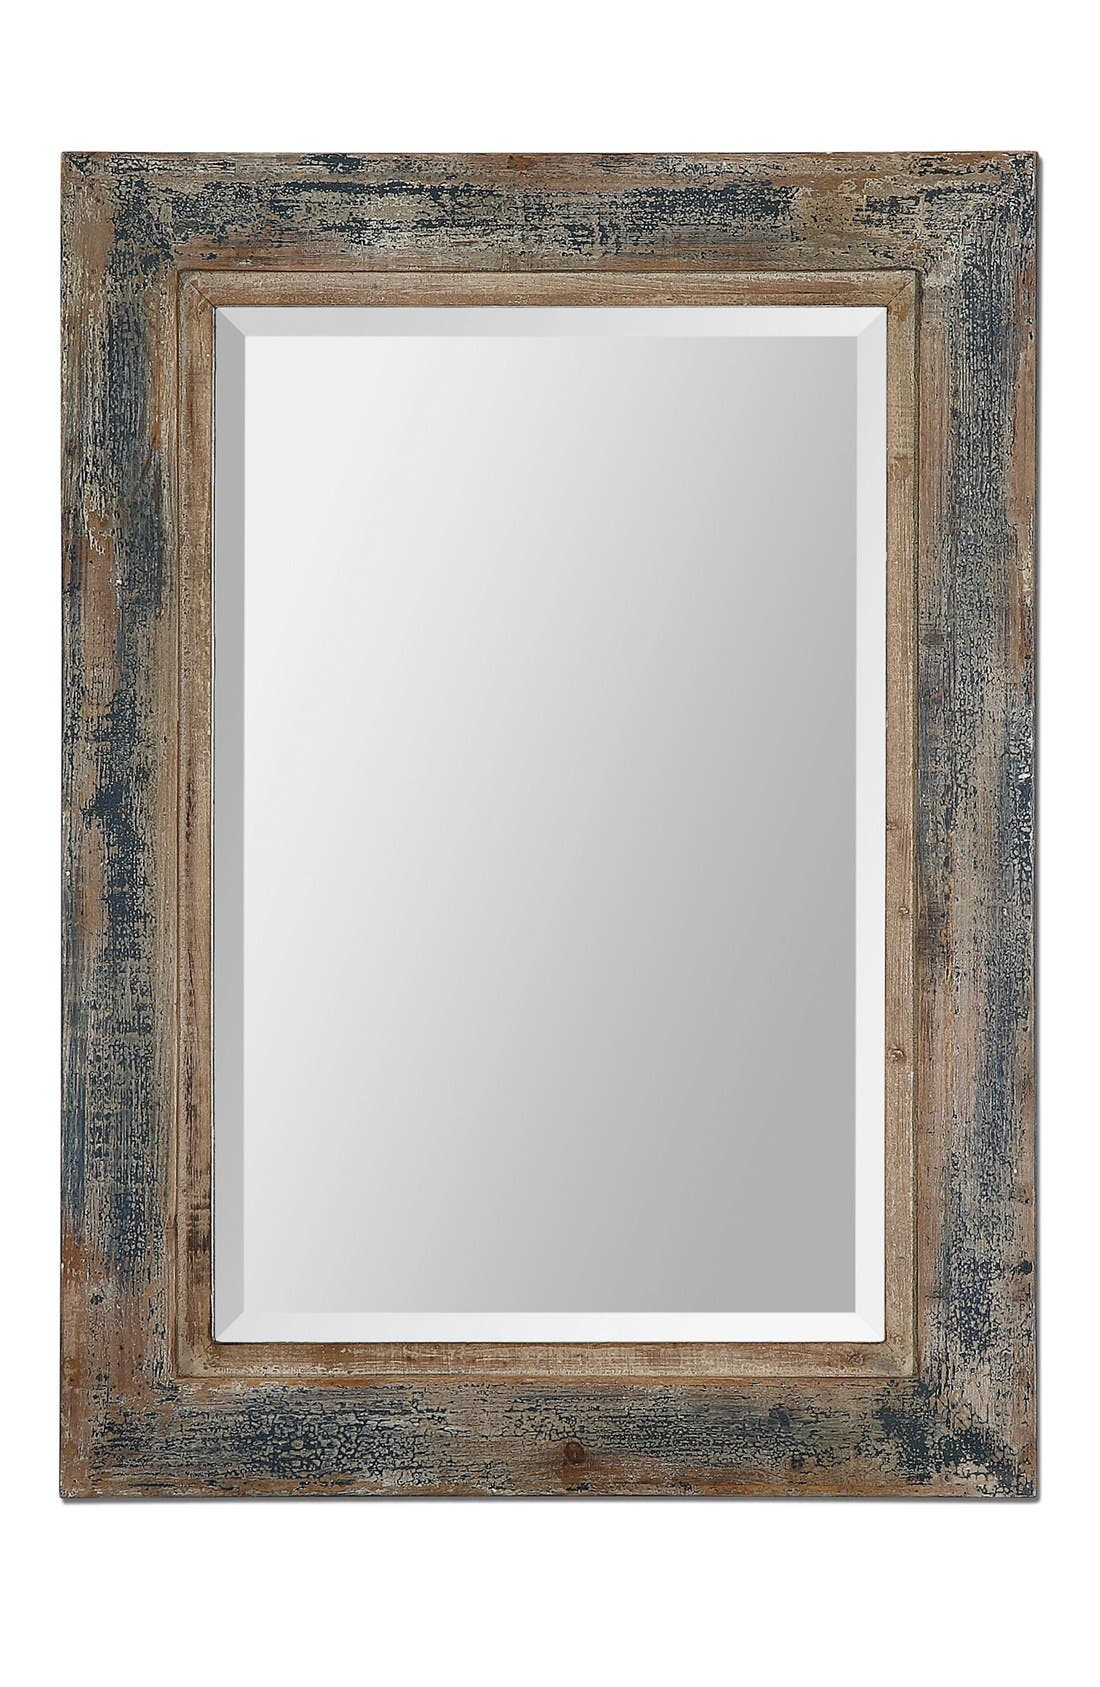 'Bozeman' Distressed Wooden Mirror,                             Main thumbnail 1, color,                             400